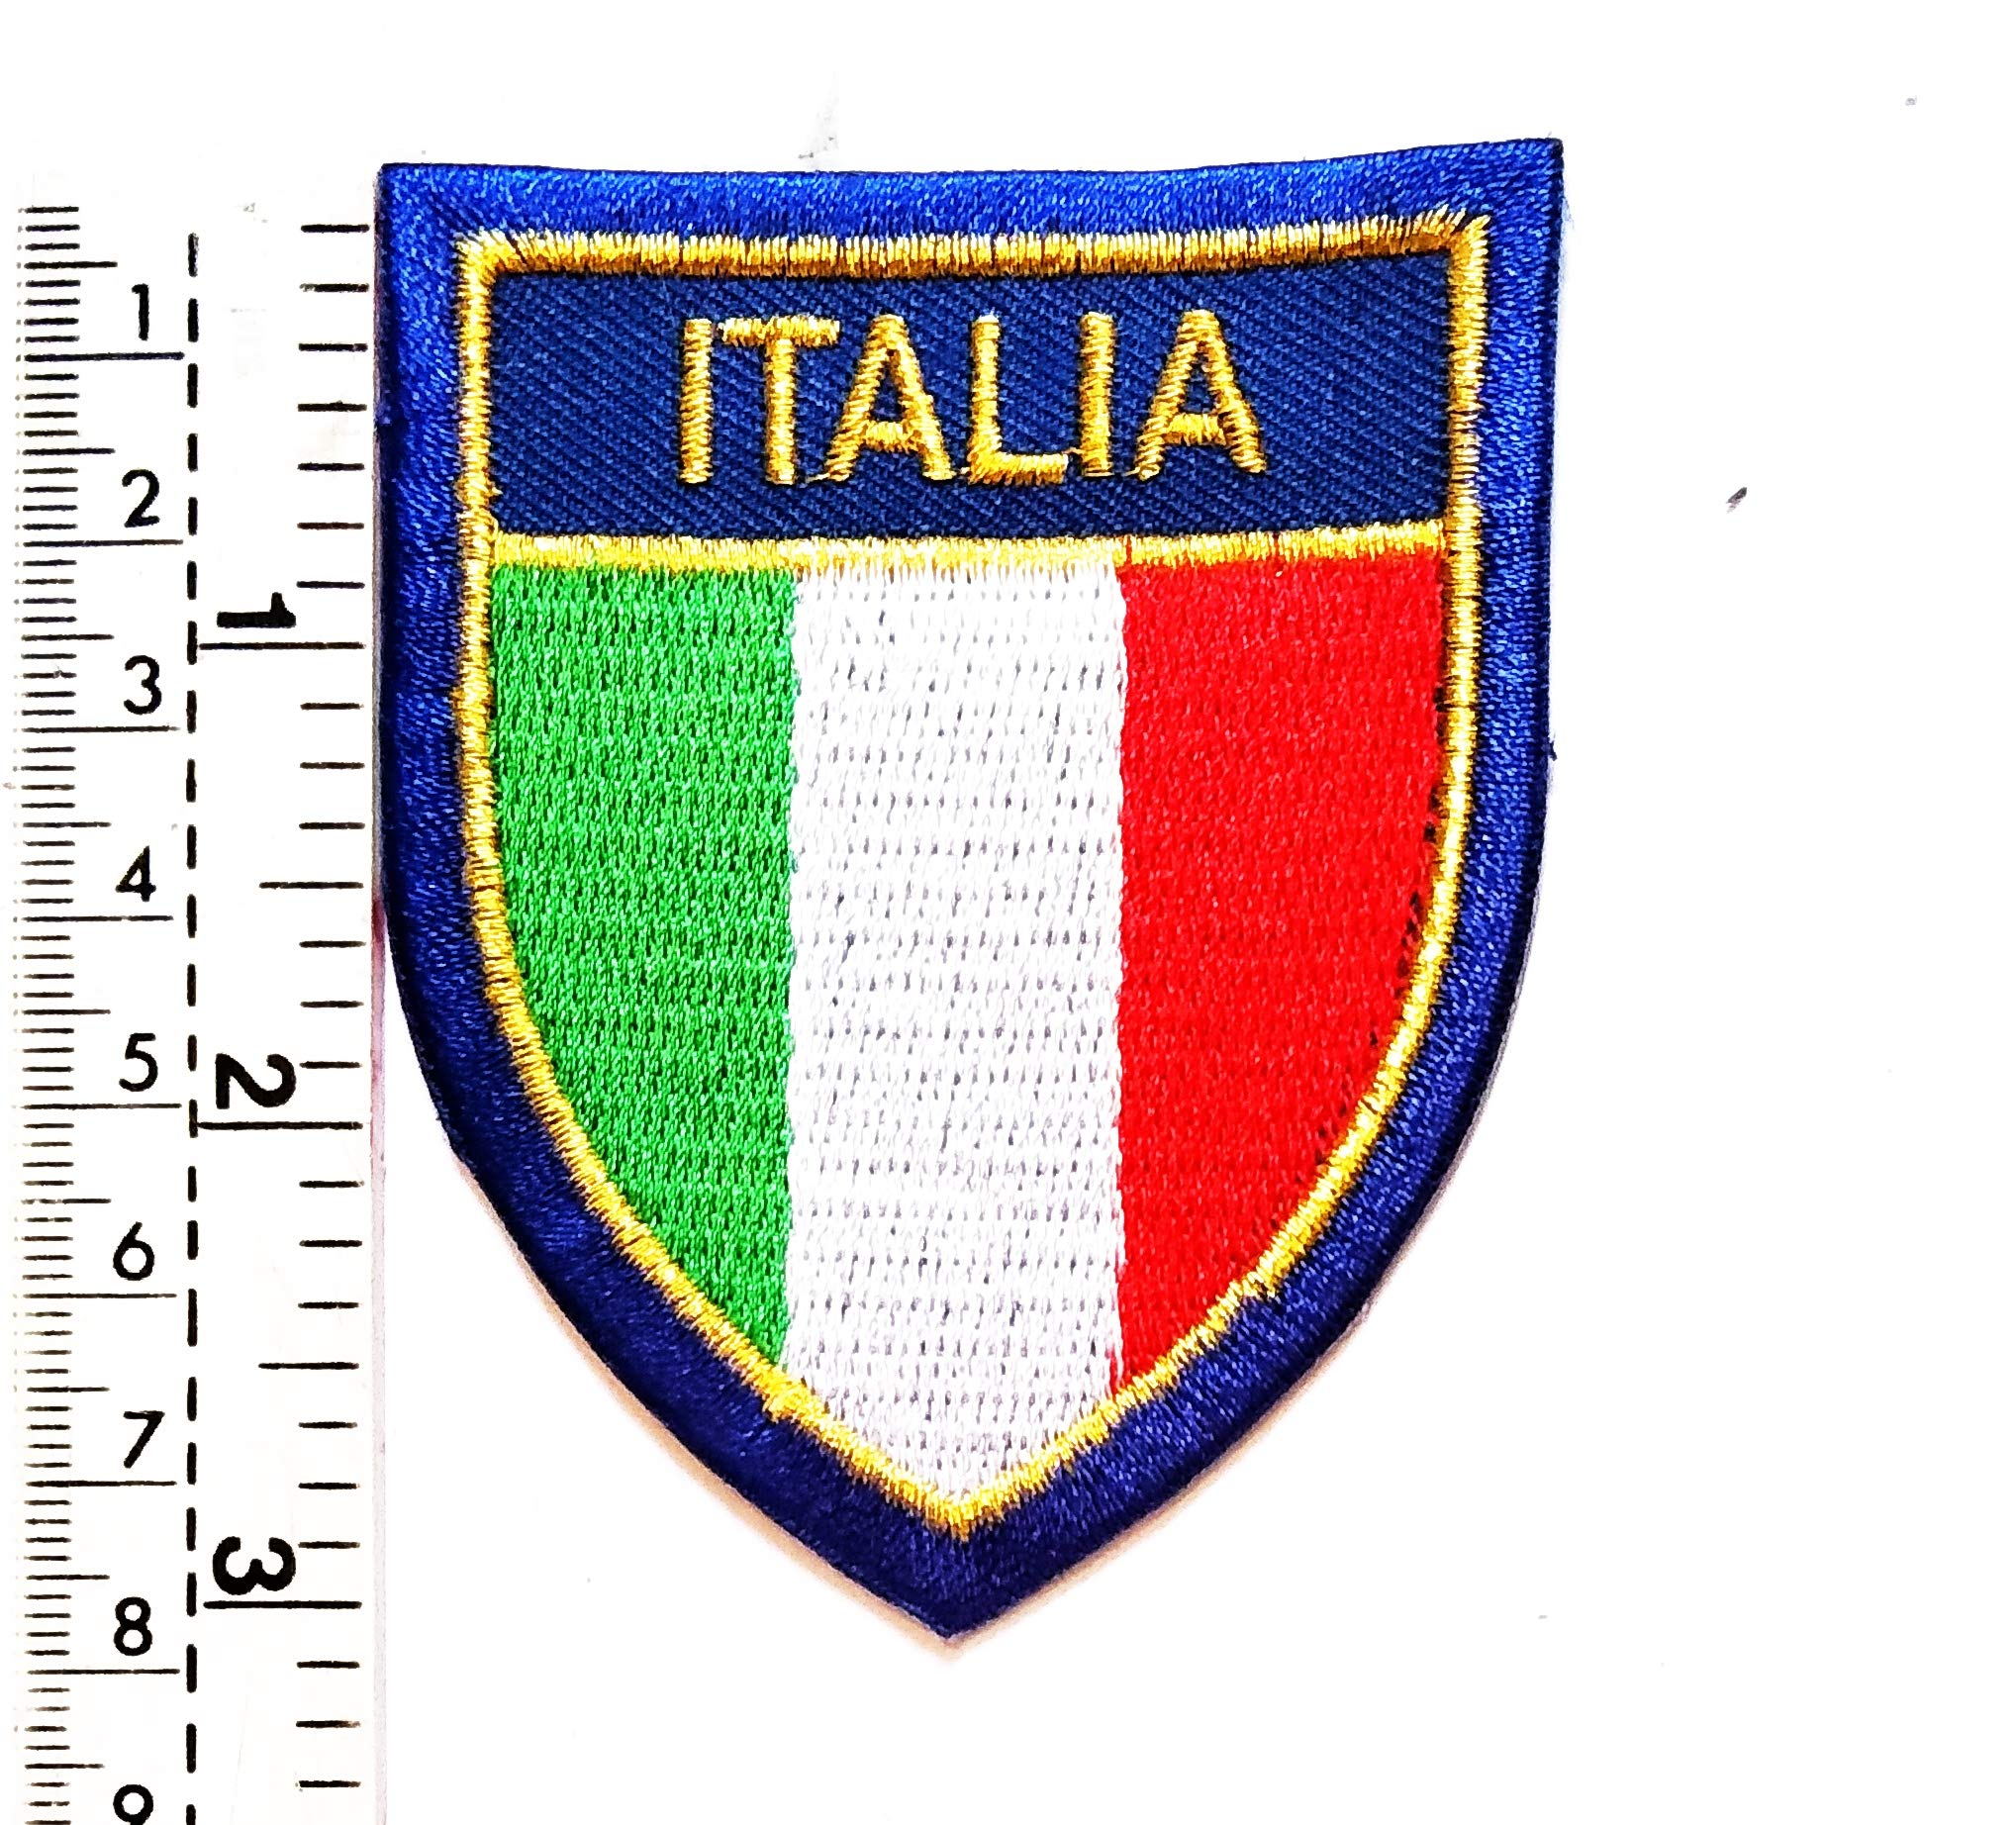 Italy National Flag Embroidered Patch Iron on Sew On Badge For Clothes Bags etc